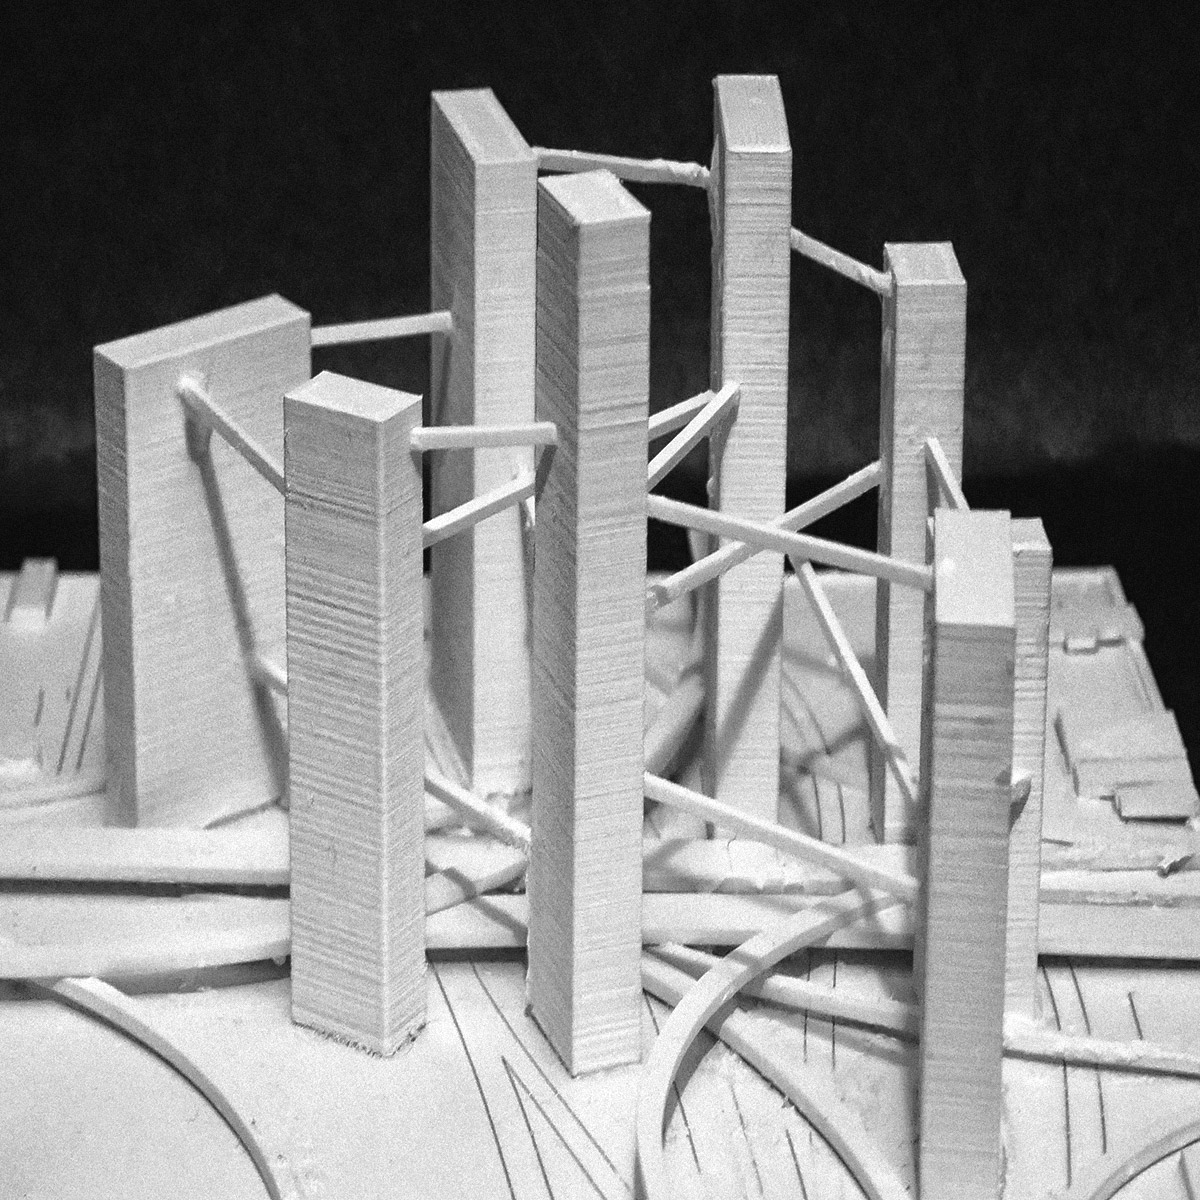 Urban massing model for a series of infill towers on the unused land around highway interchanges by student Xingyu Zhong